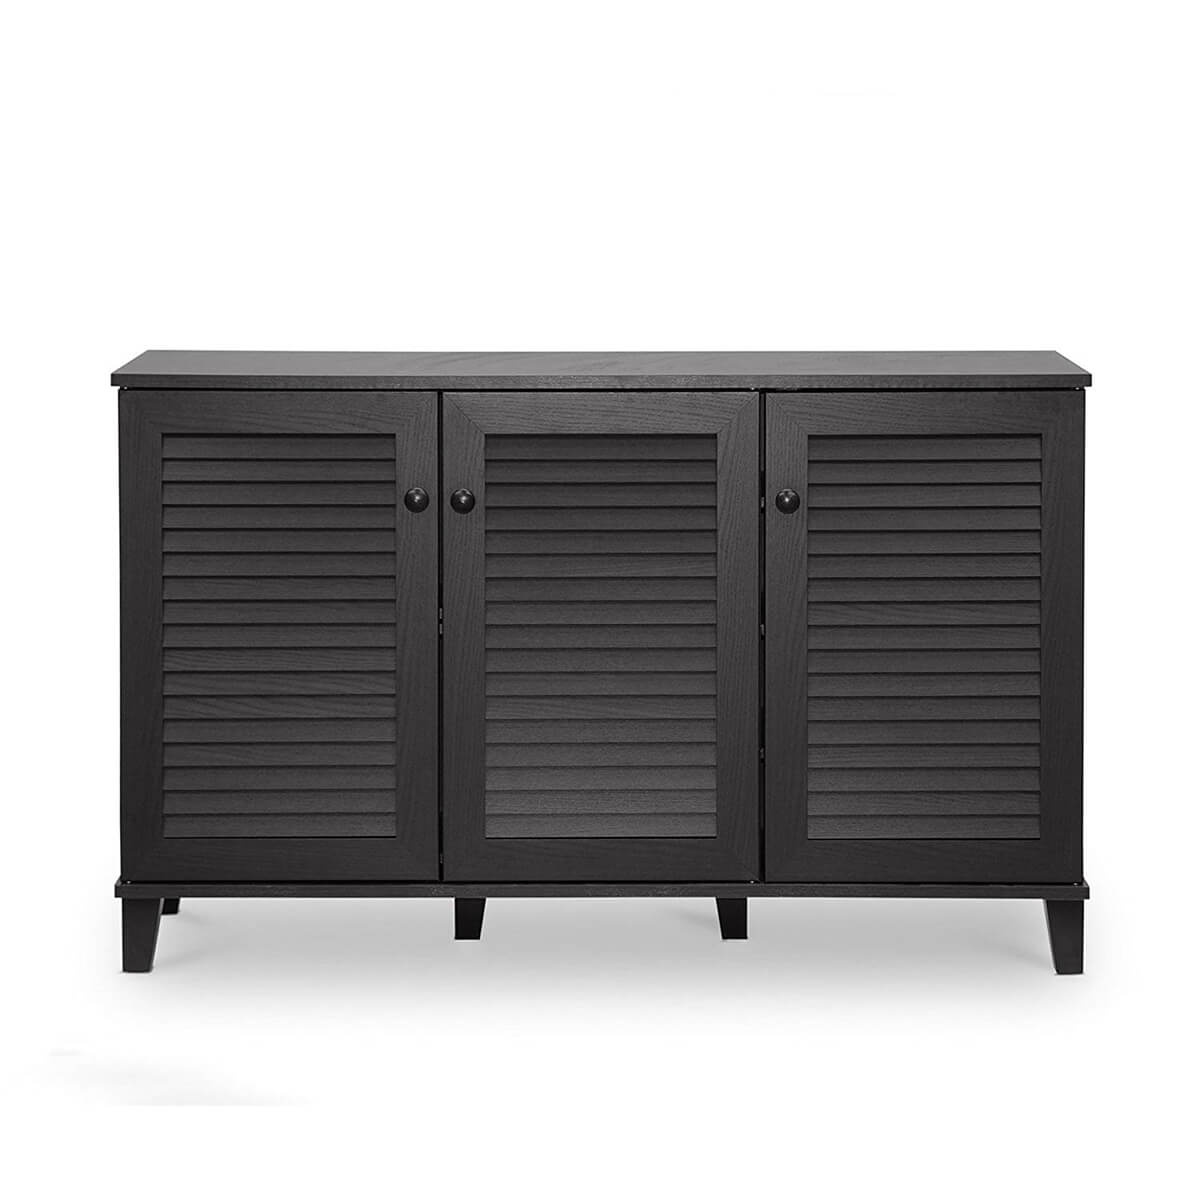 Small Espresso Black Storage Cabinet